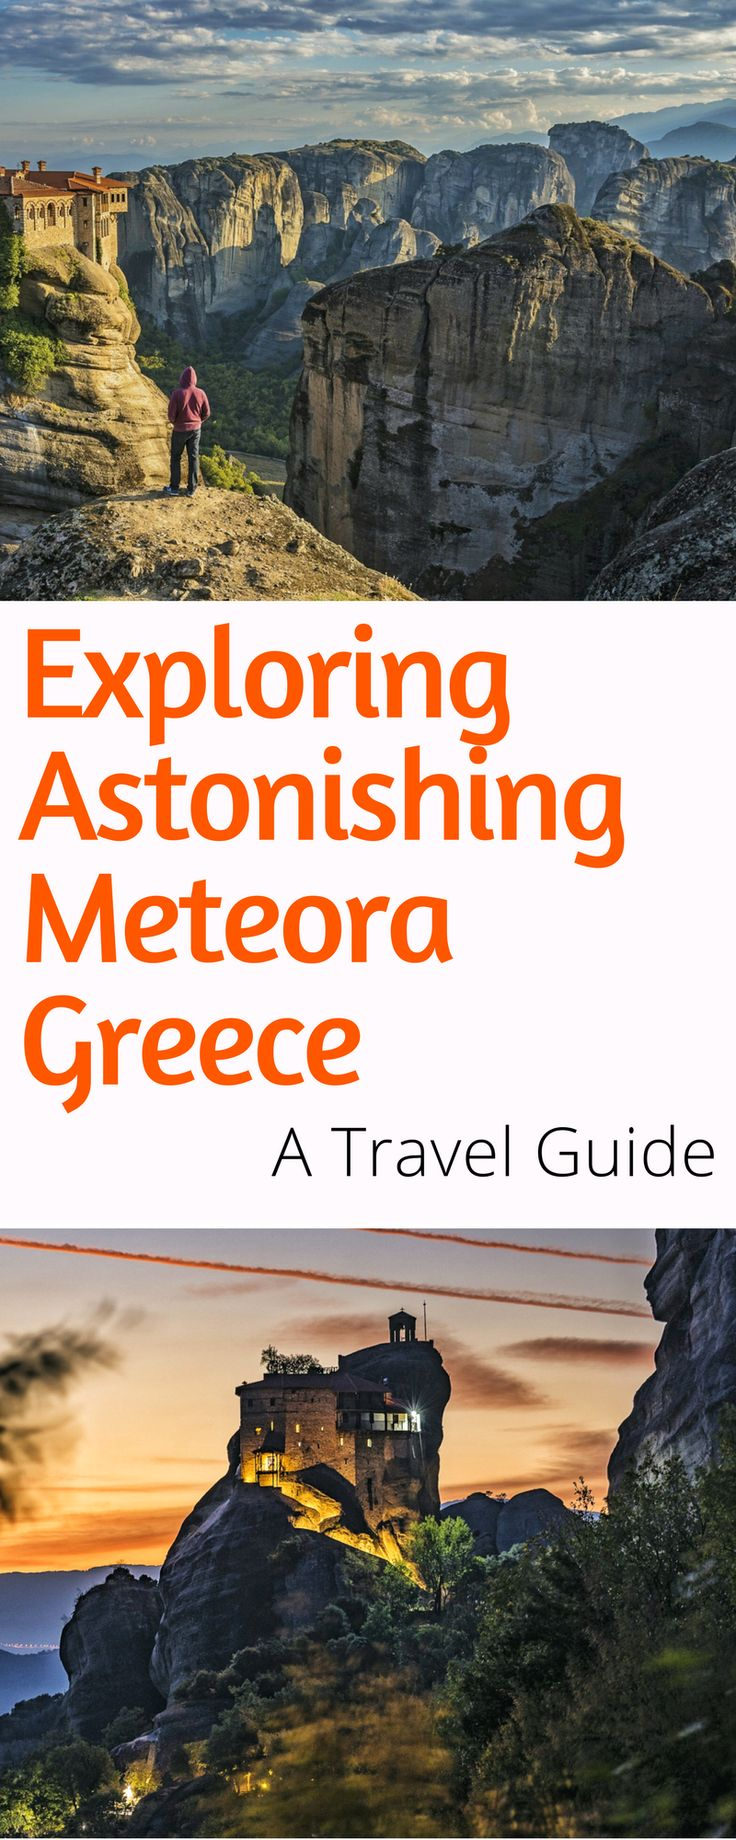 Meteora Greece Travel Guide: Everything you need to know to visit astonishing Meteora Greece. How to get to Meteora from Athens, where to stay, where to eat in Meteora and more. Click here to start planning (and for more stunning pics)!